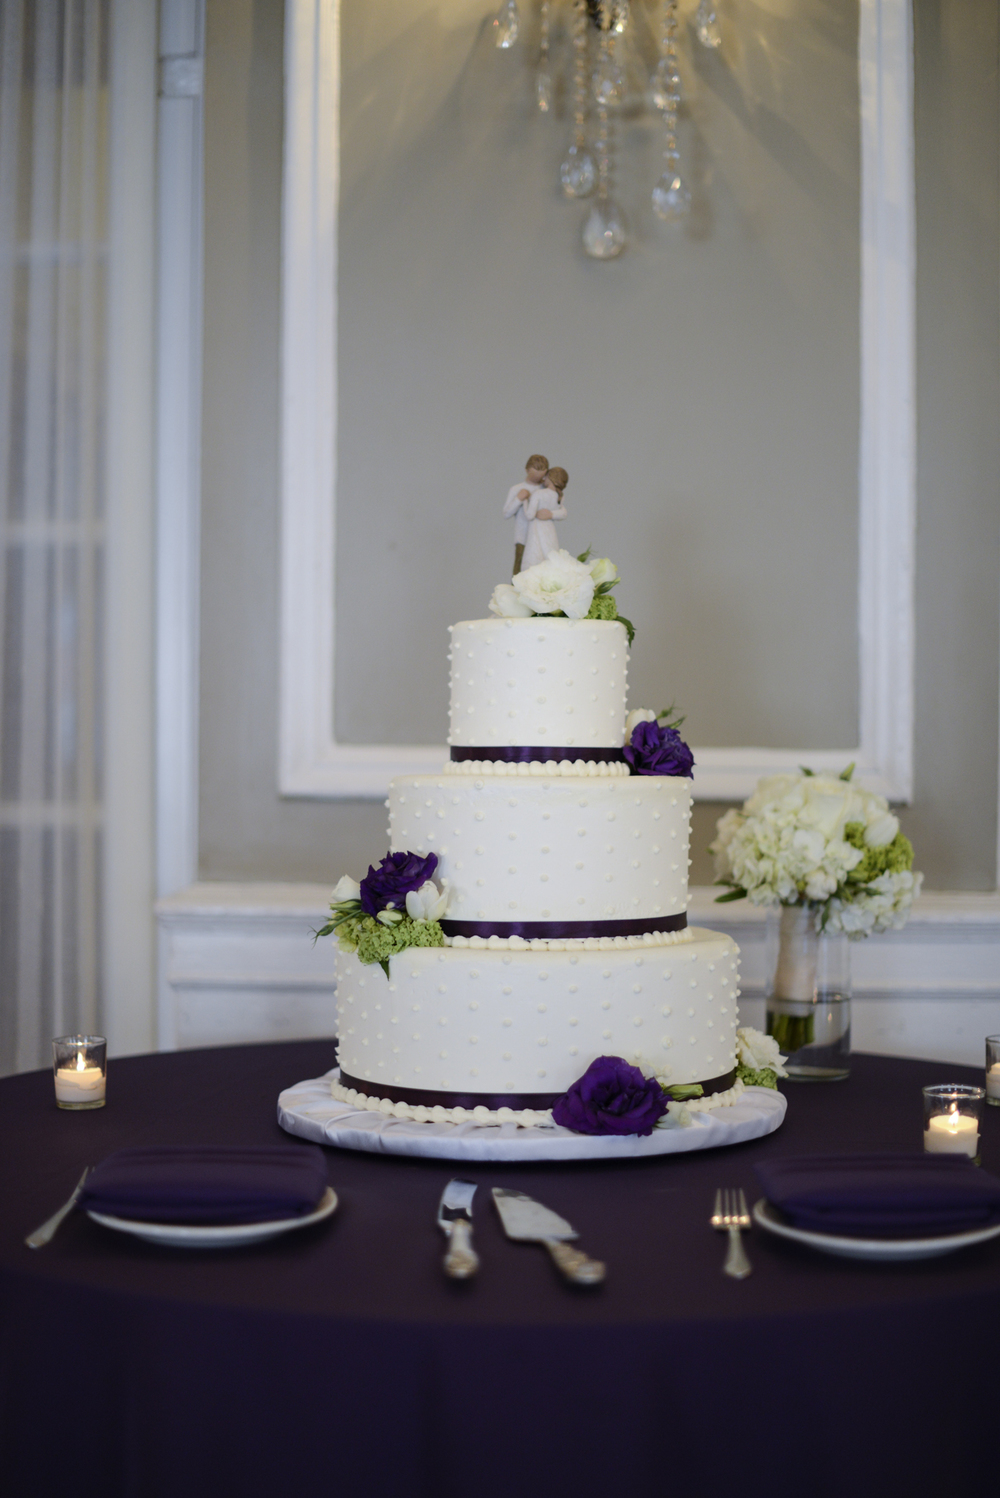 Wedding cake in Yorktowne Hotel, Lancaster, Pennsylvania